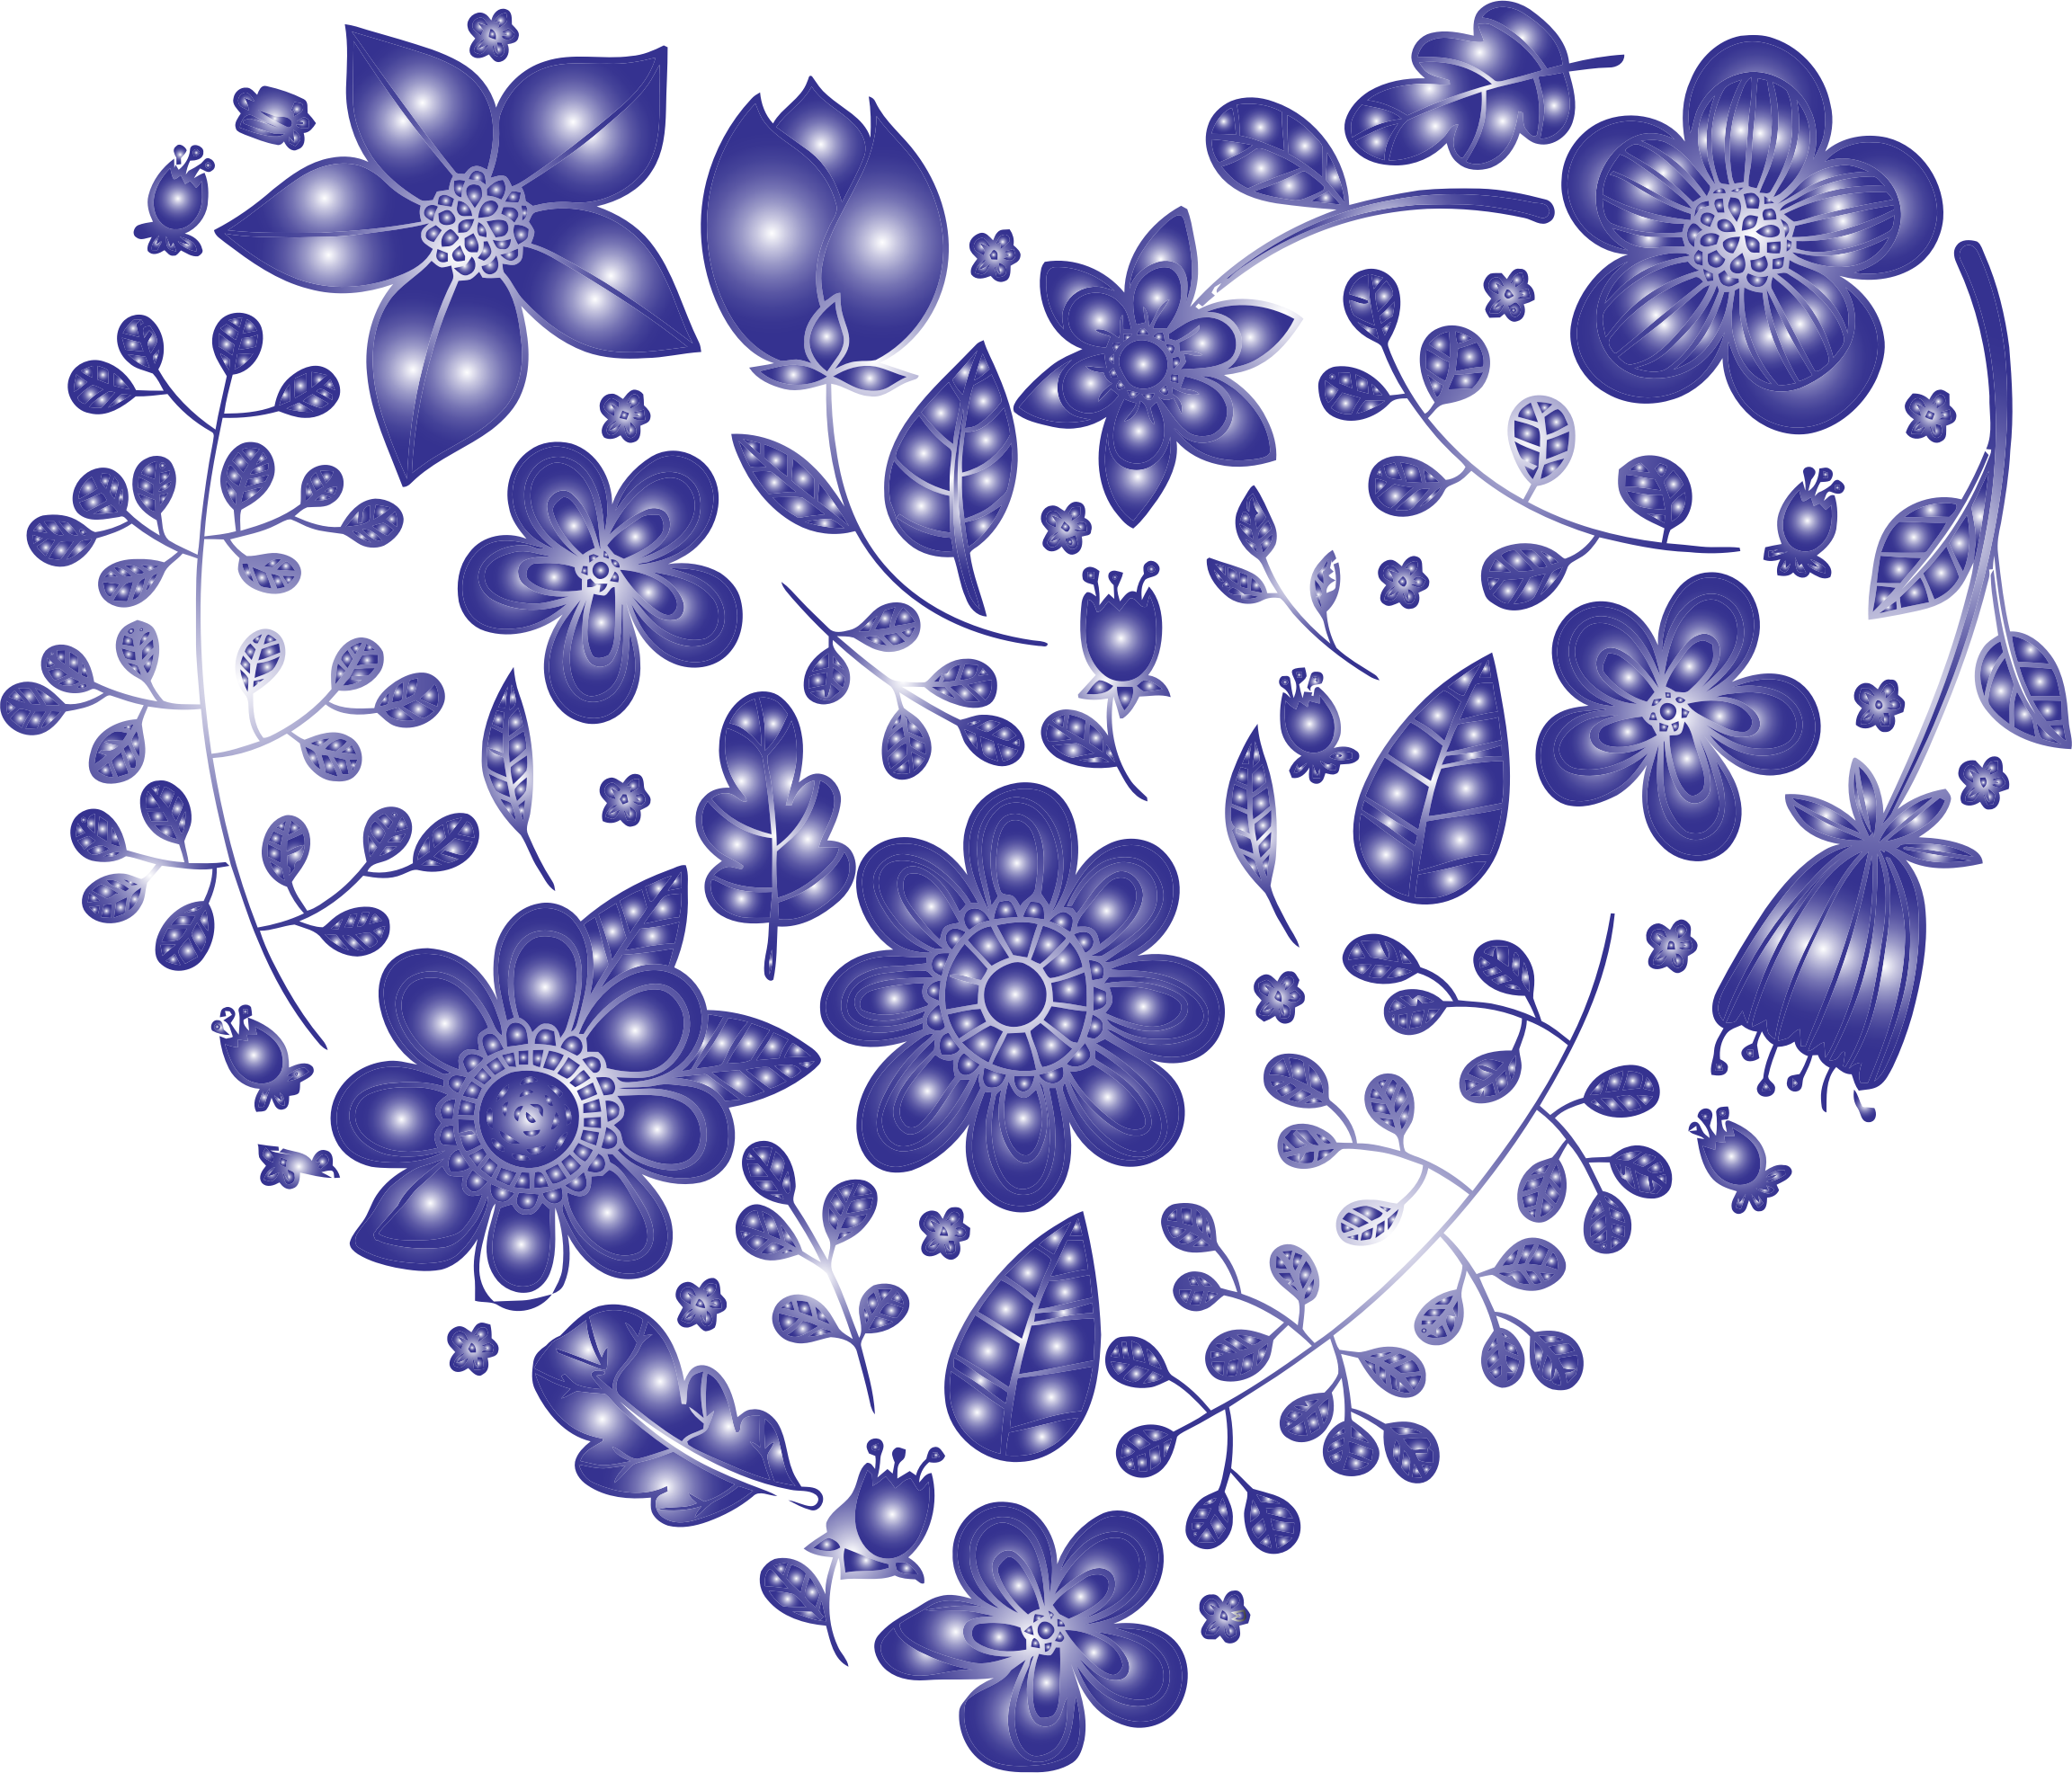 Heart and flowers clipart png royalty free library Clipart - Violet Floral Heart No Background png royalty free library